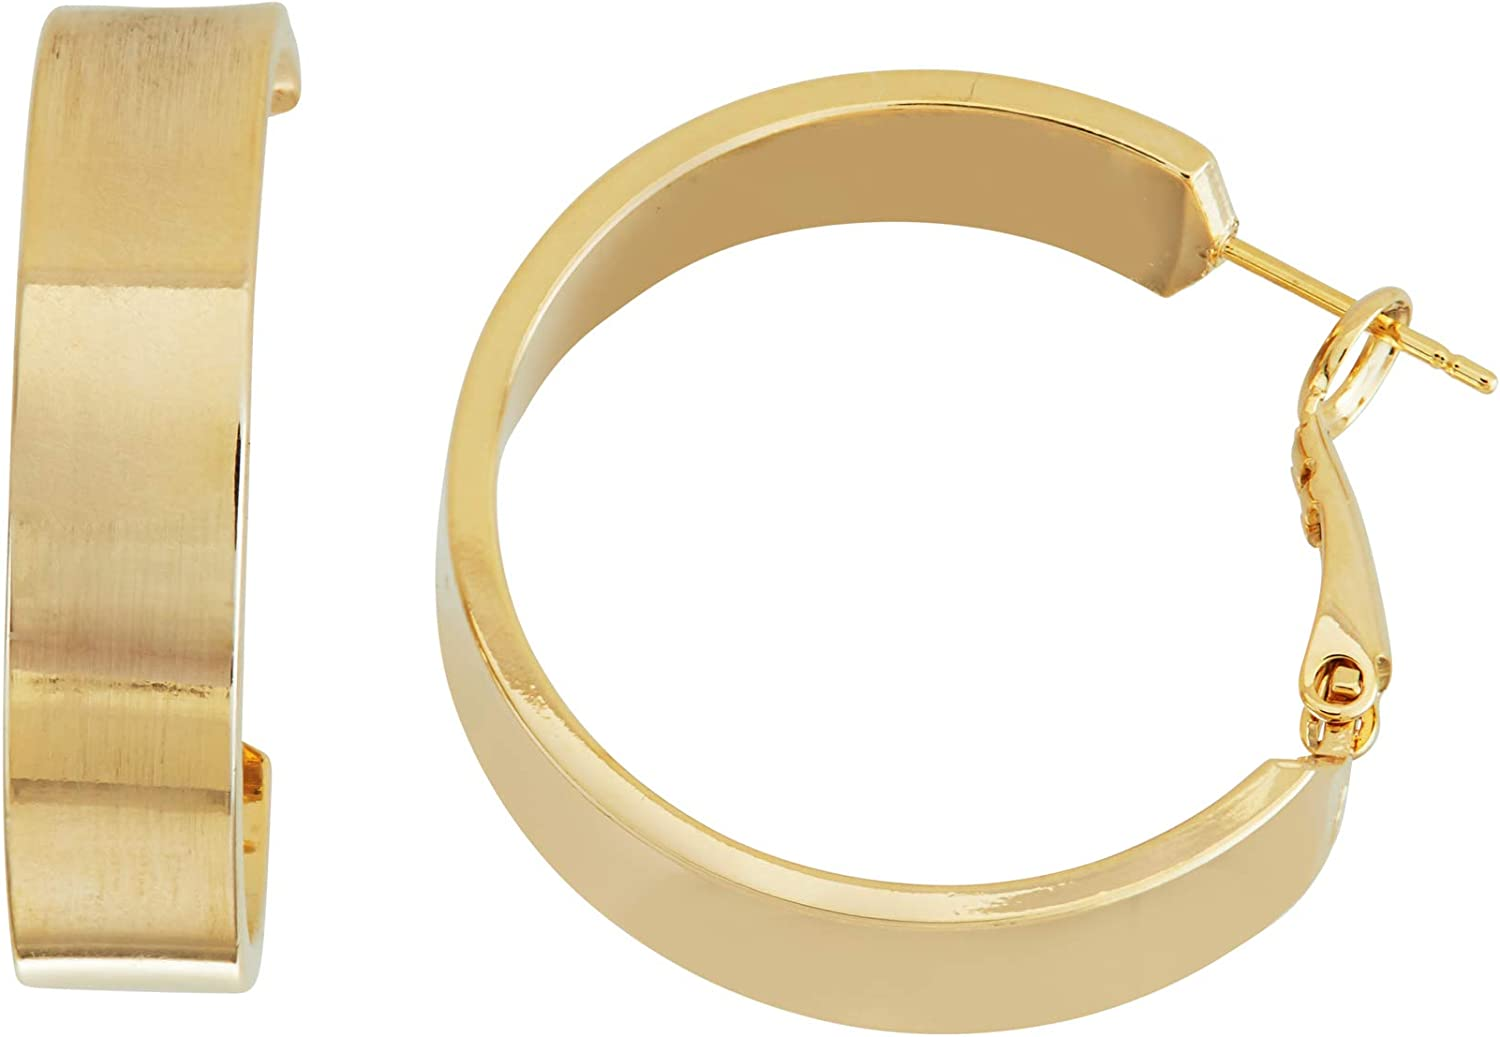 Fine Faux Women's Fashion Accessories 14K Gold Plated Polished Flat Tube Hoop Earrings 7mm X 30mm - Valentines and Birthday Gifts for Her